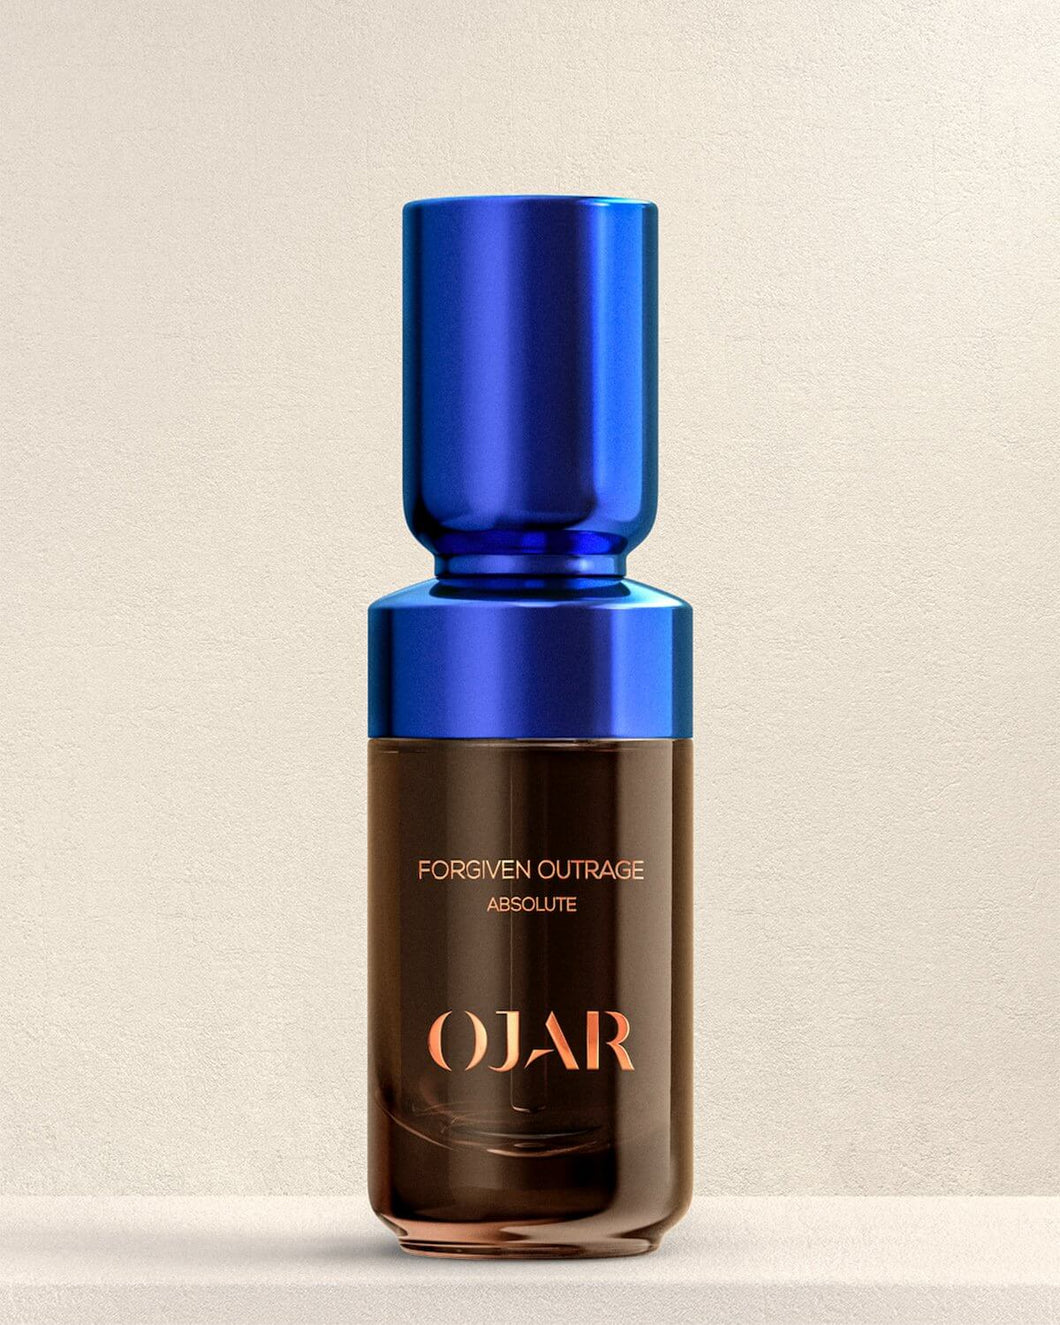 OJAR Absolute Forgiven Outrage Perfume